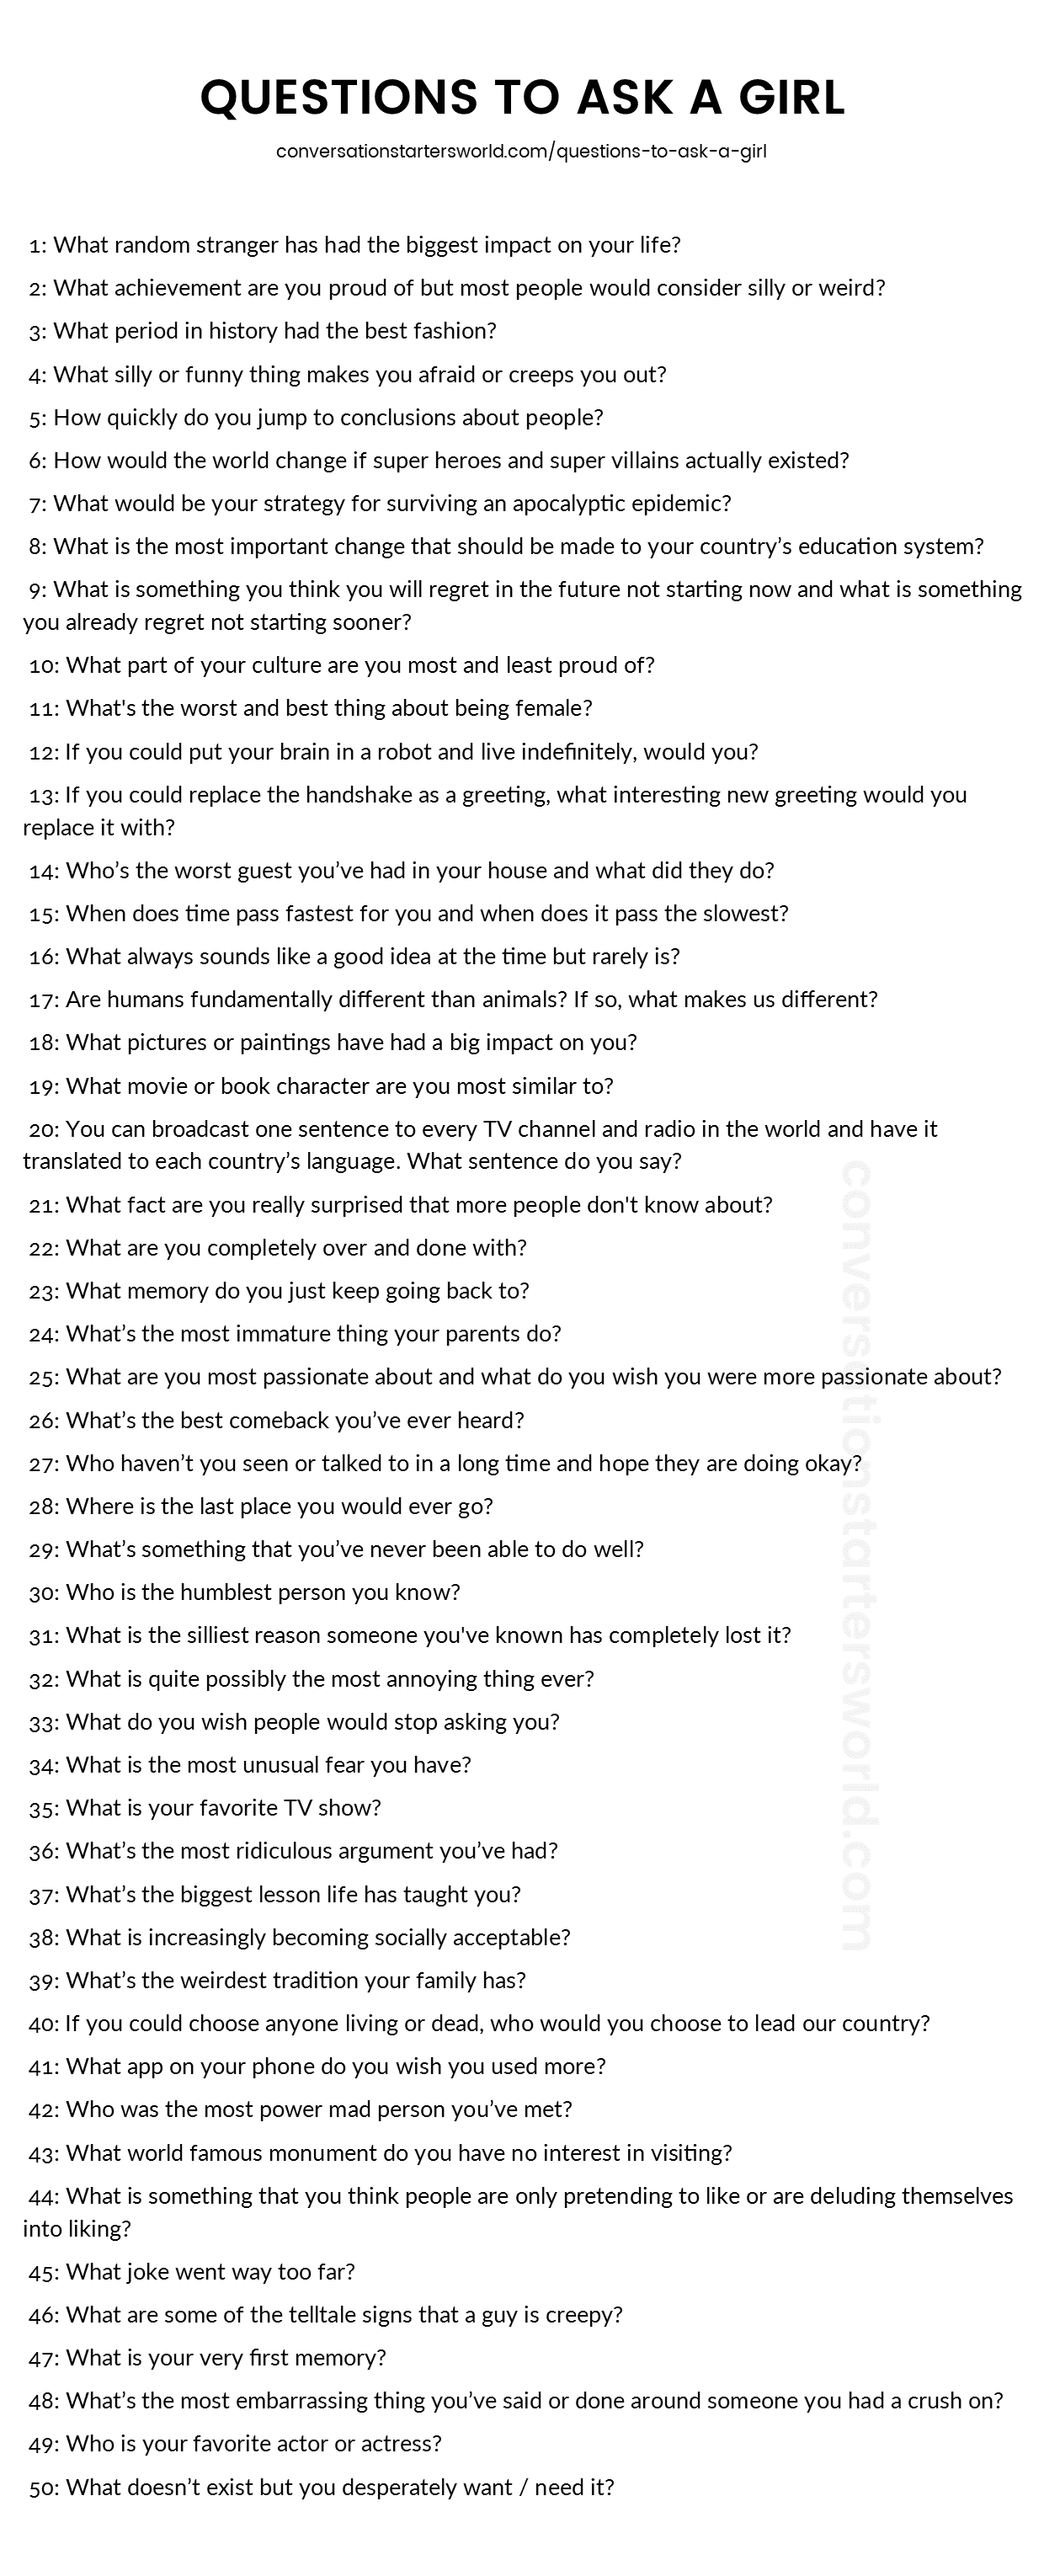 Personal questions to ask a girl